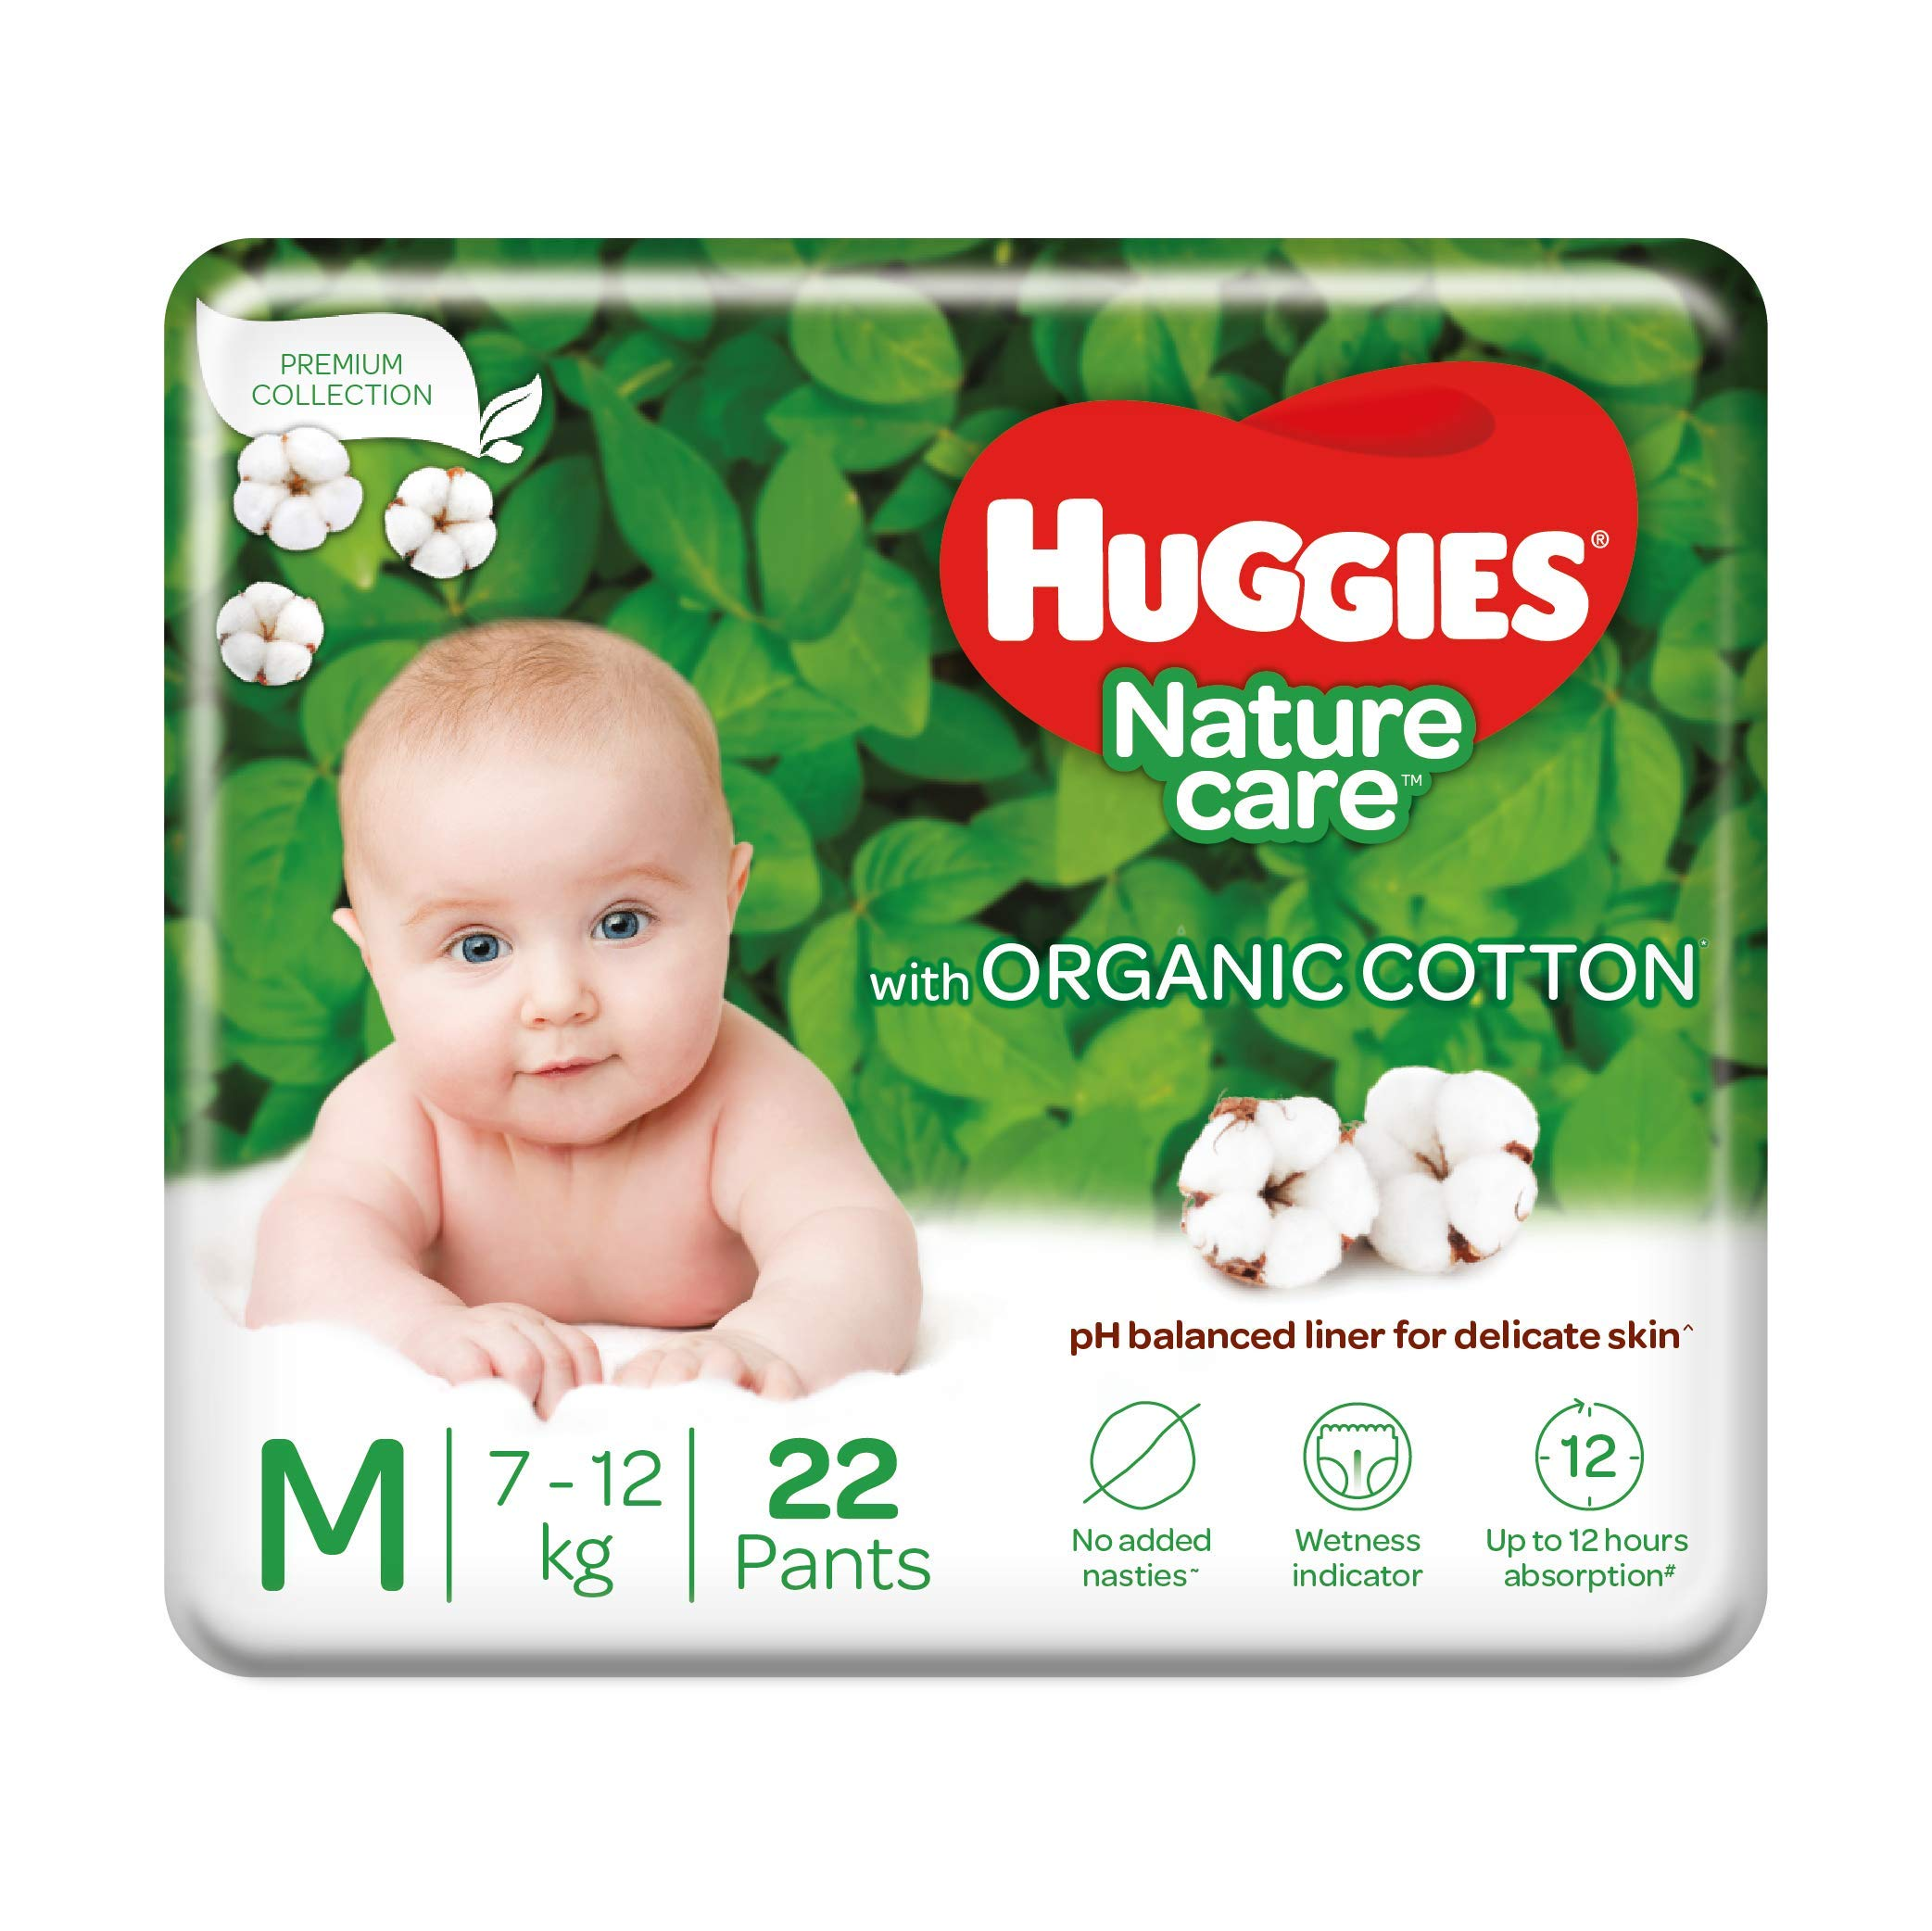 Huggies Nature Care Pants, Medium (M) Size Baby Diaper Pants, 22 Count, Nature's gentle protection with organic cotton